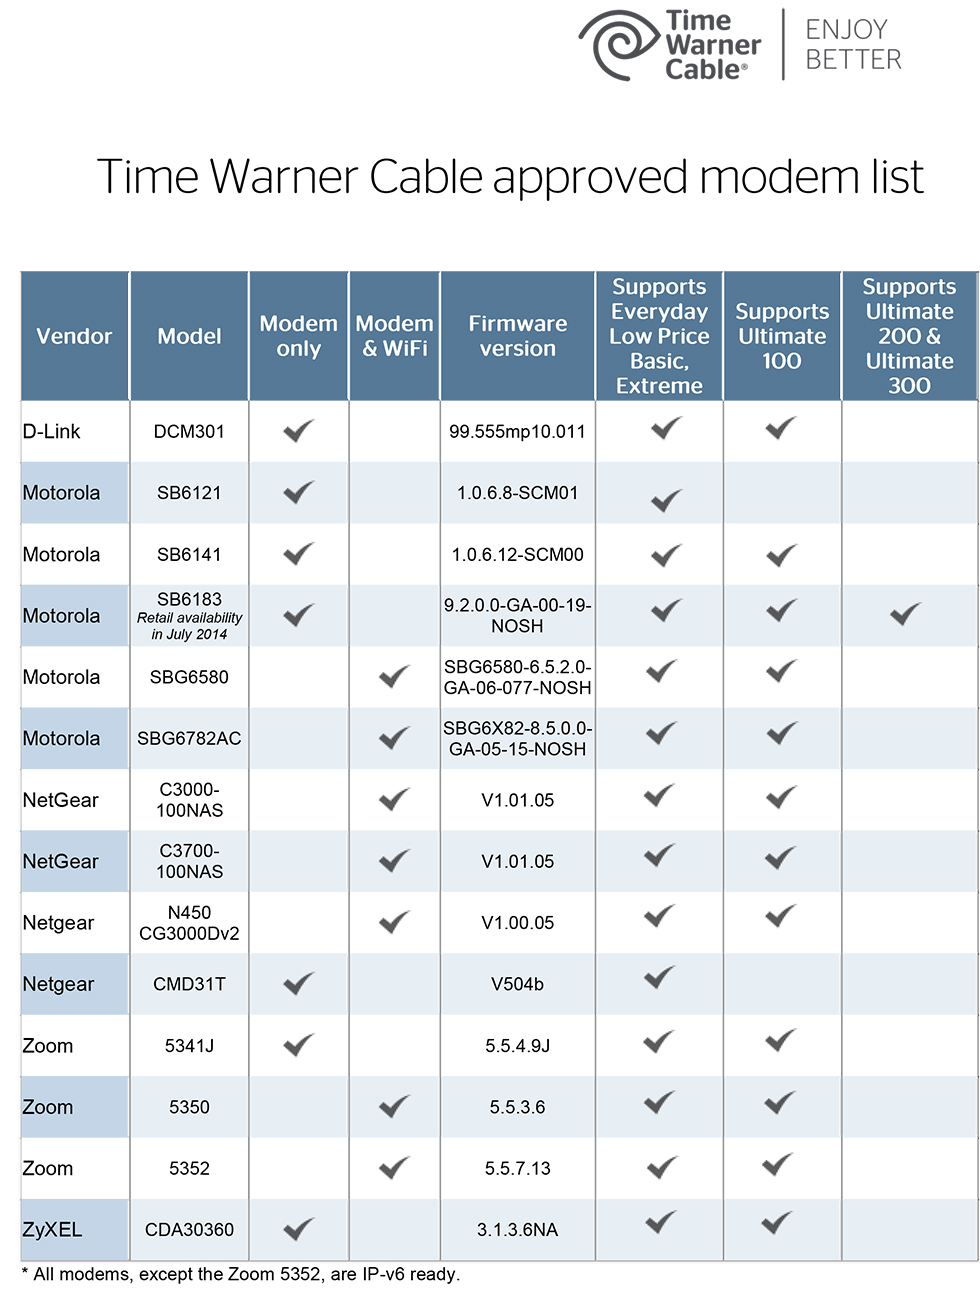 Time Warner Cable 300 Mbps